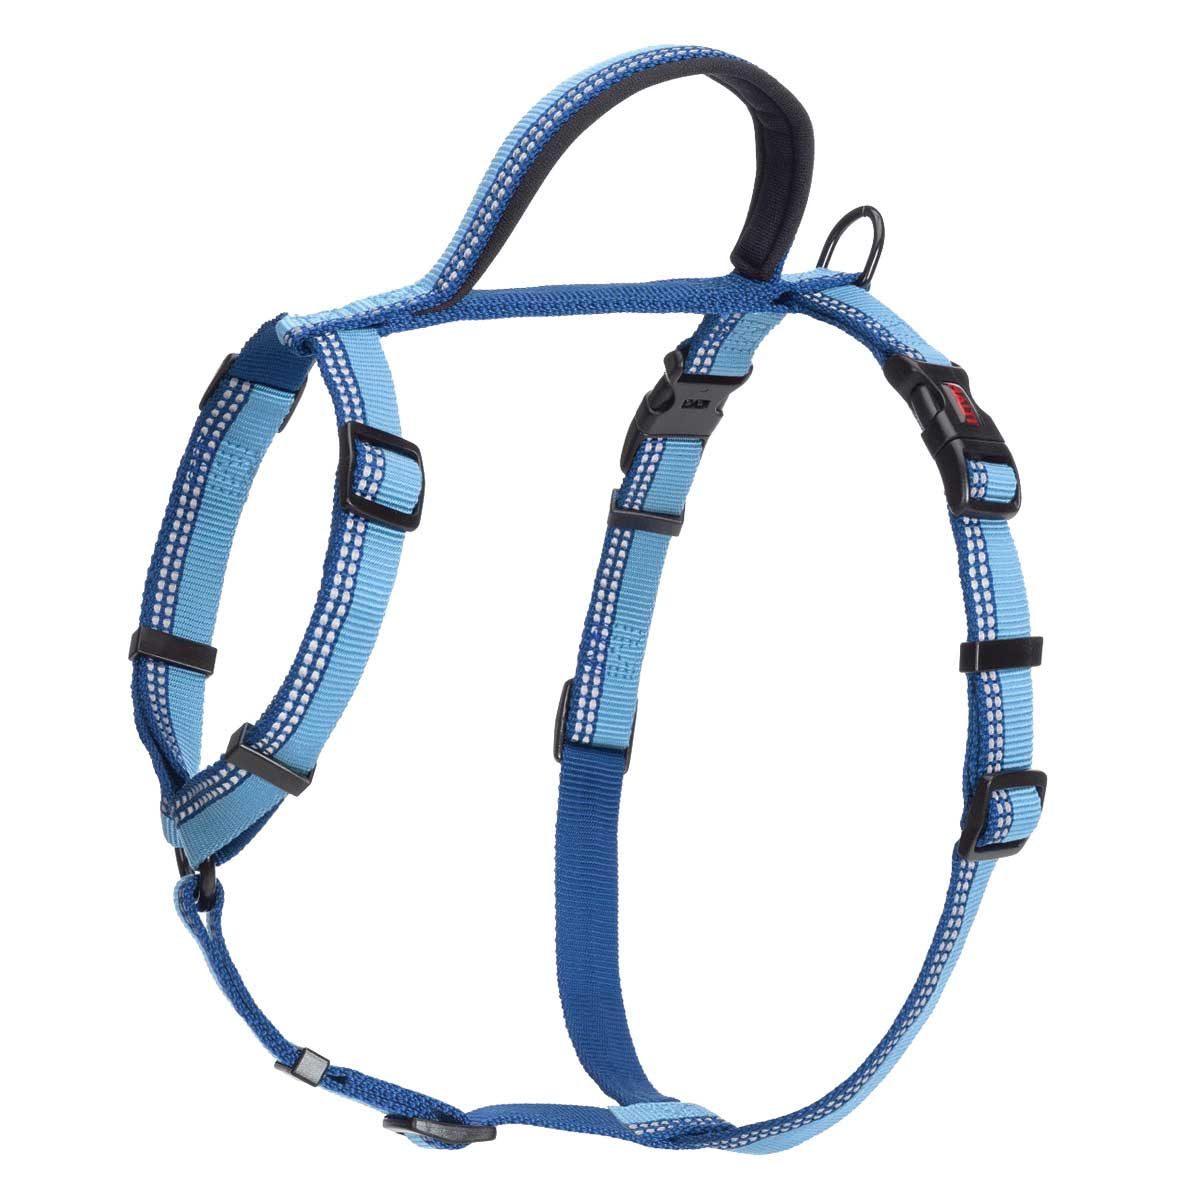 Halti Walking Harness Medium Blue 22 inches -30 inches